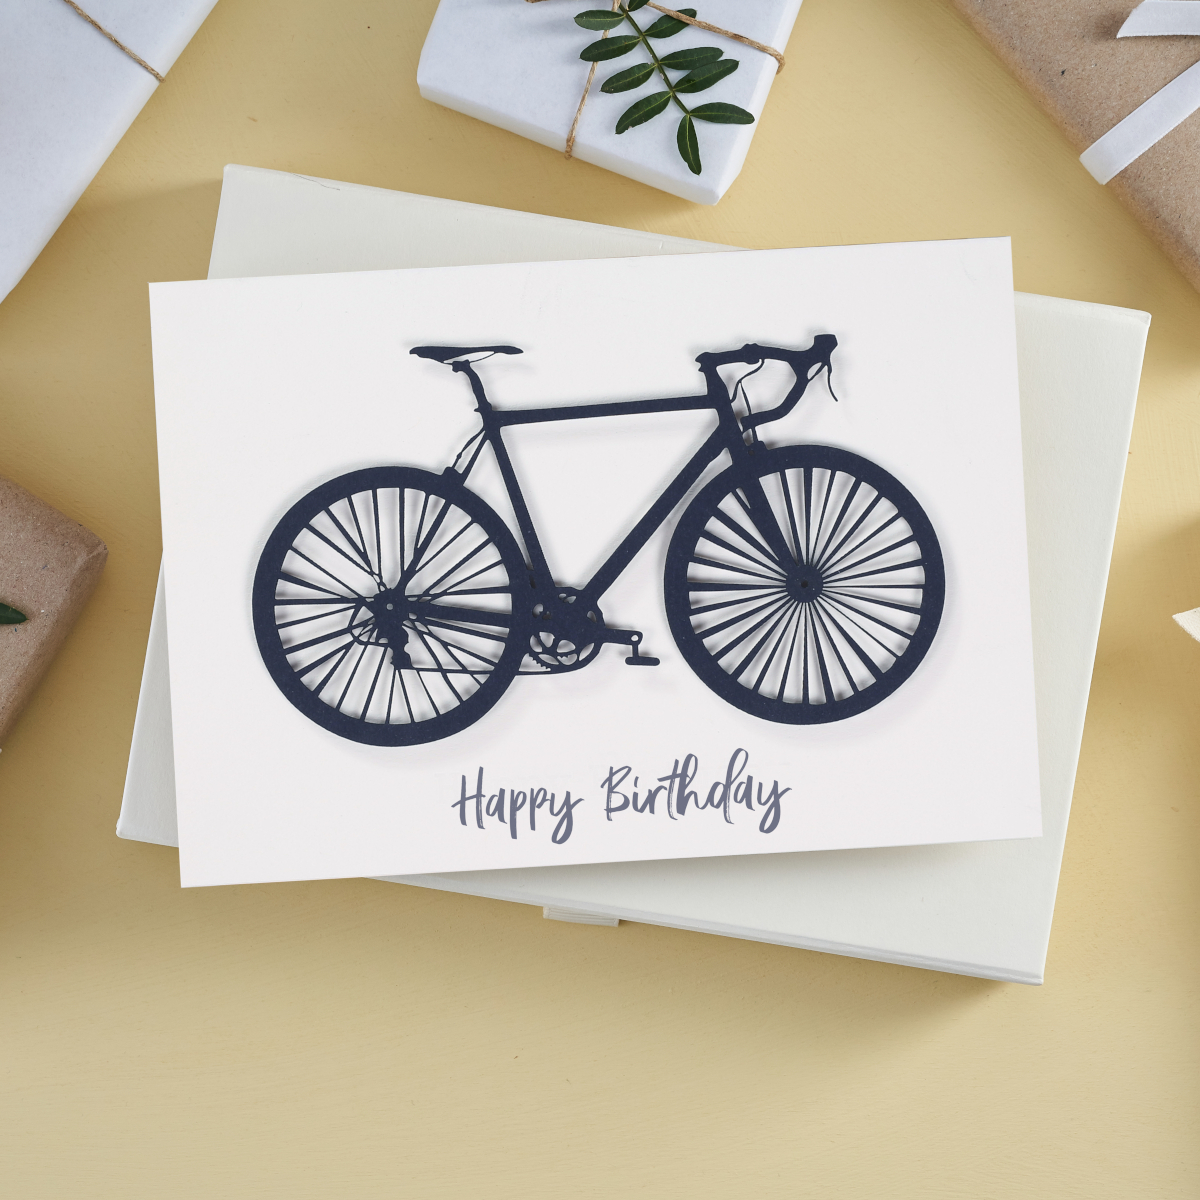 Personalised bike card, perfect gift for cyclists